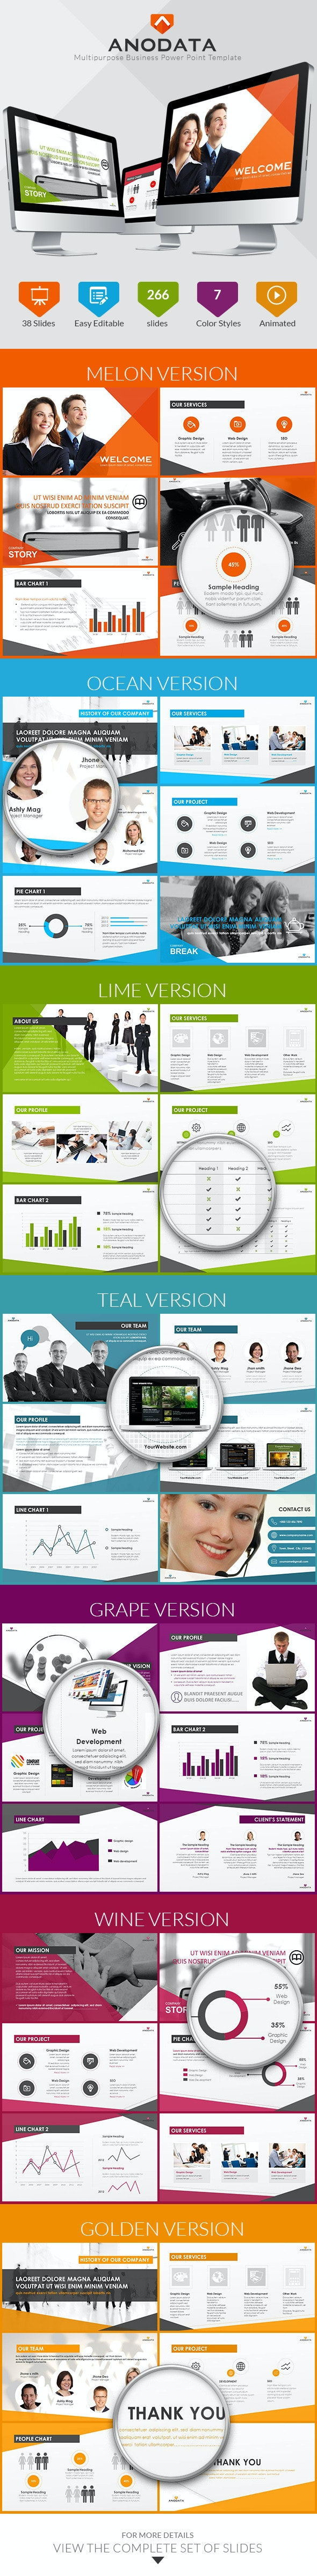 Multipurpose Business Power Point Template - Business PowerPoint Templates